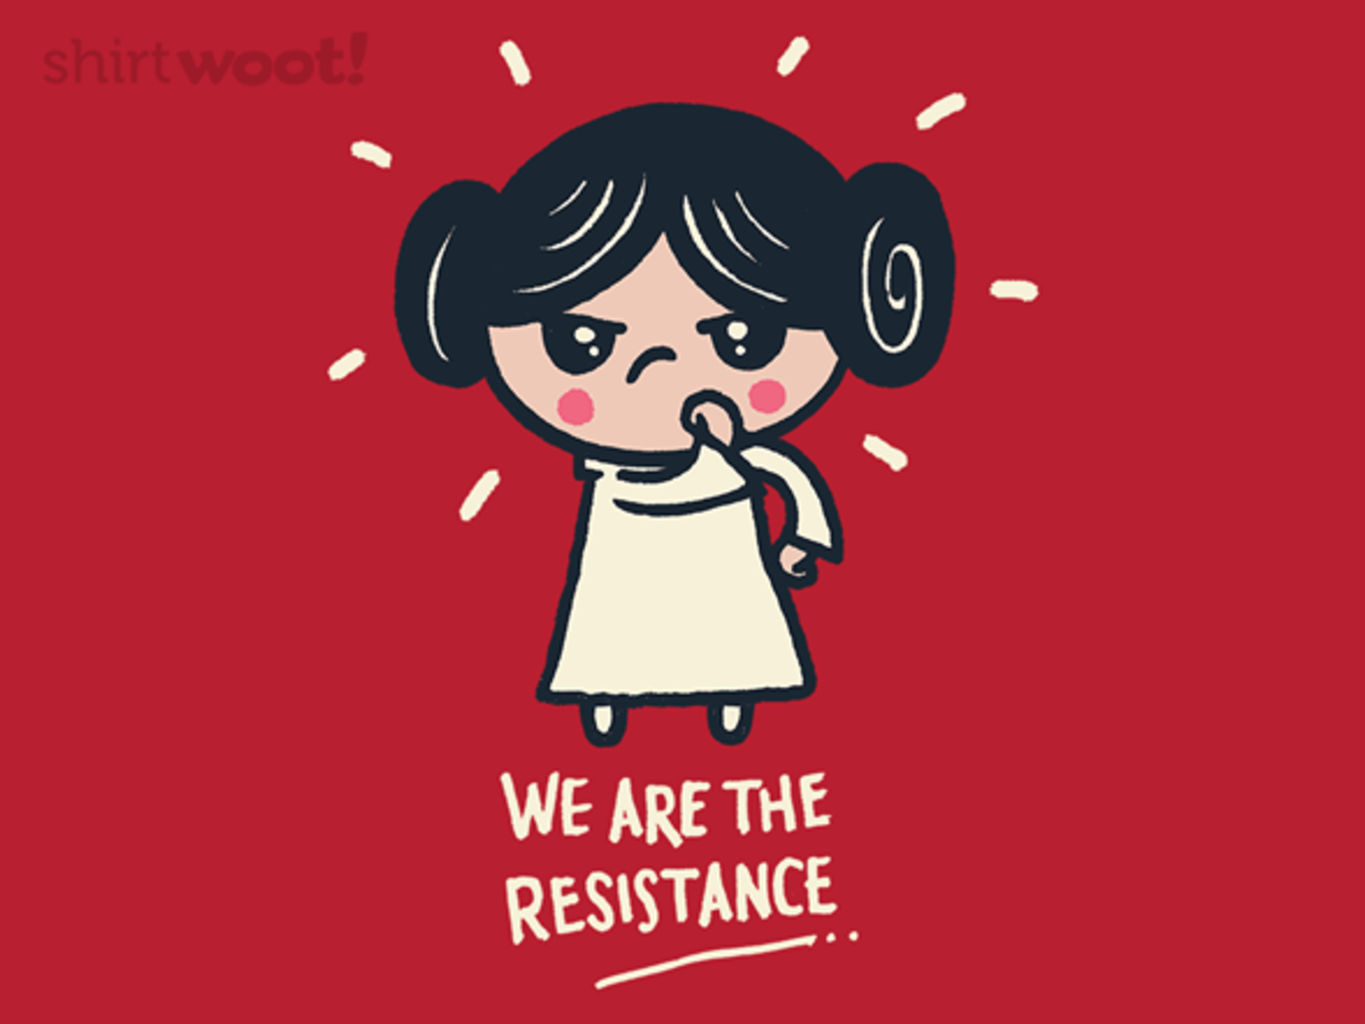 Woot!: We Are the Resistance